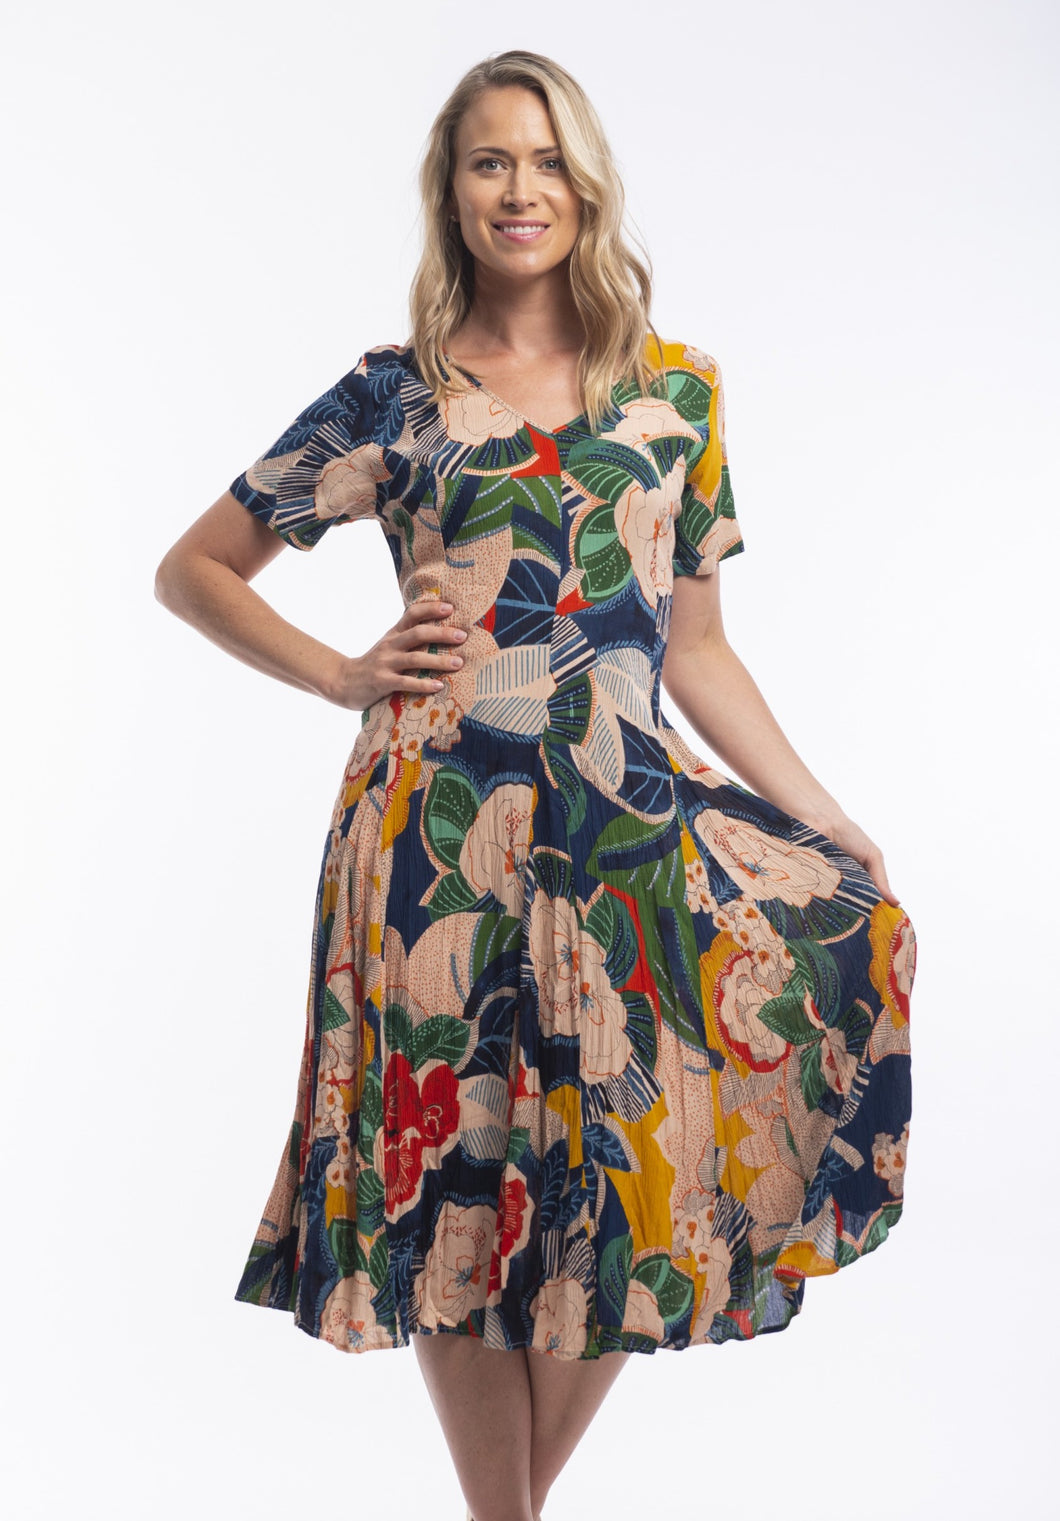 When it comes to the brand Orientique it's all about colour, detail and comfort while still looking modern and stylish. The Costa Brava Godet Dress is inspired by the colours and motifs of the Caribbean. Bold graphic florals in bright tones. Made from 100% Rayon it's soft and cool for those hot summer days.